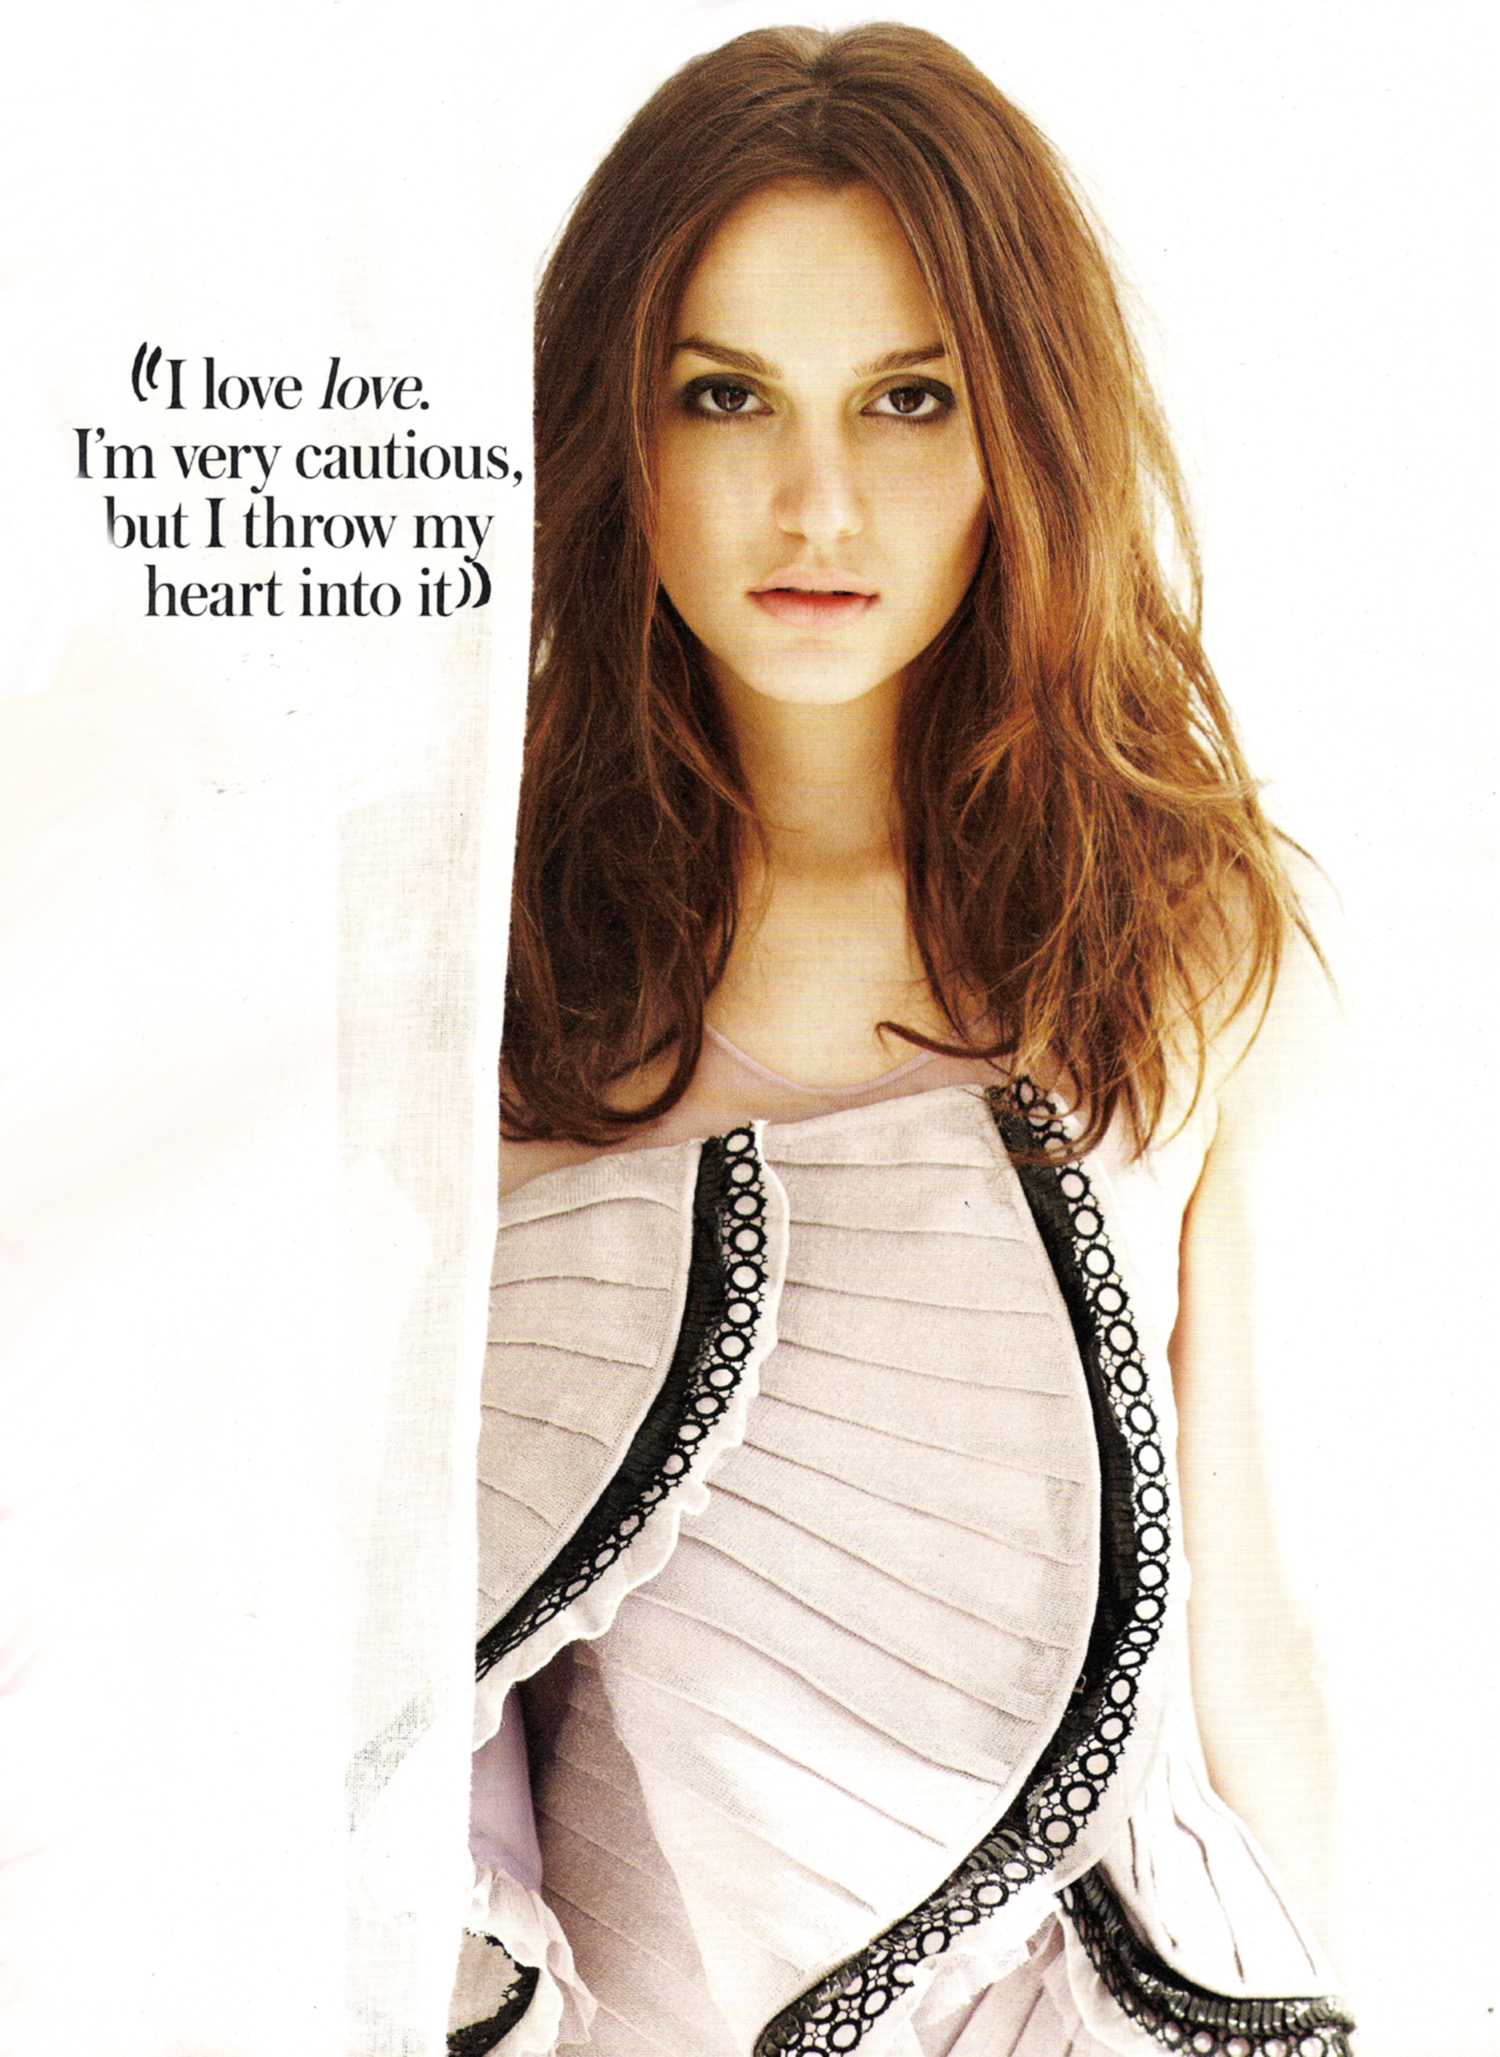 Fall Wallpaper Images Instyle Uk March 2010 Leighton Meester Magazine Scan Hq